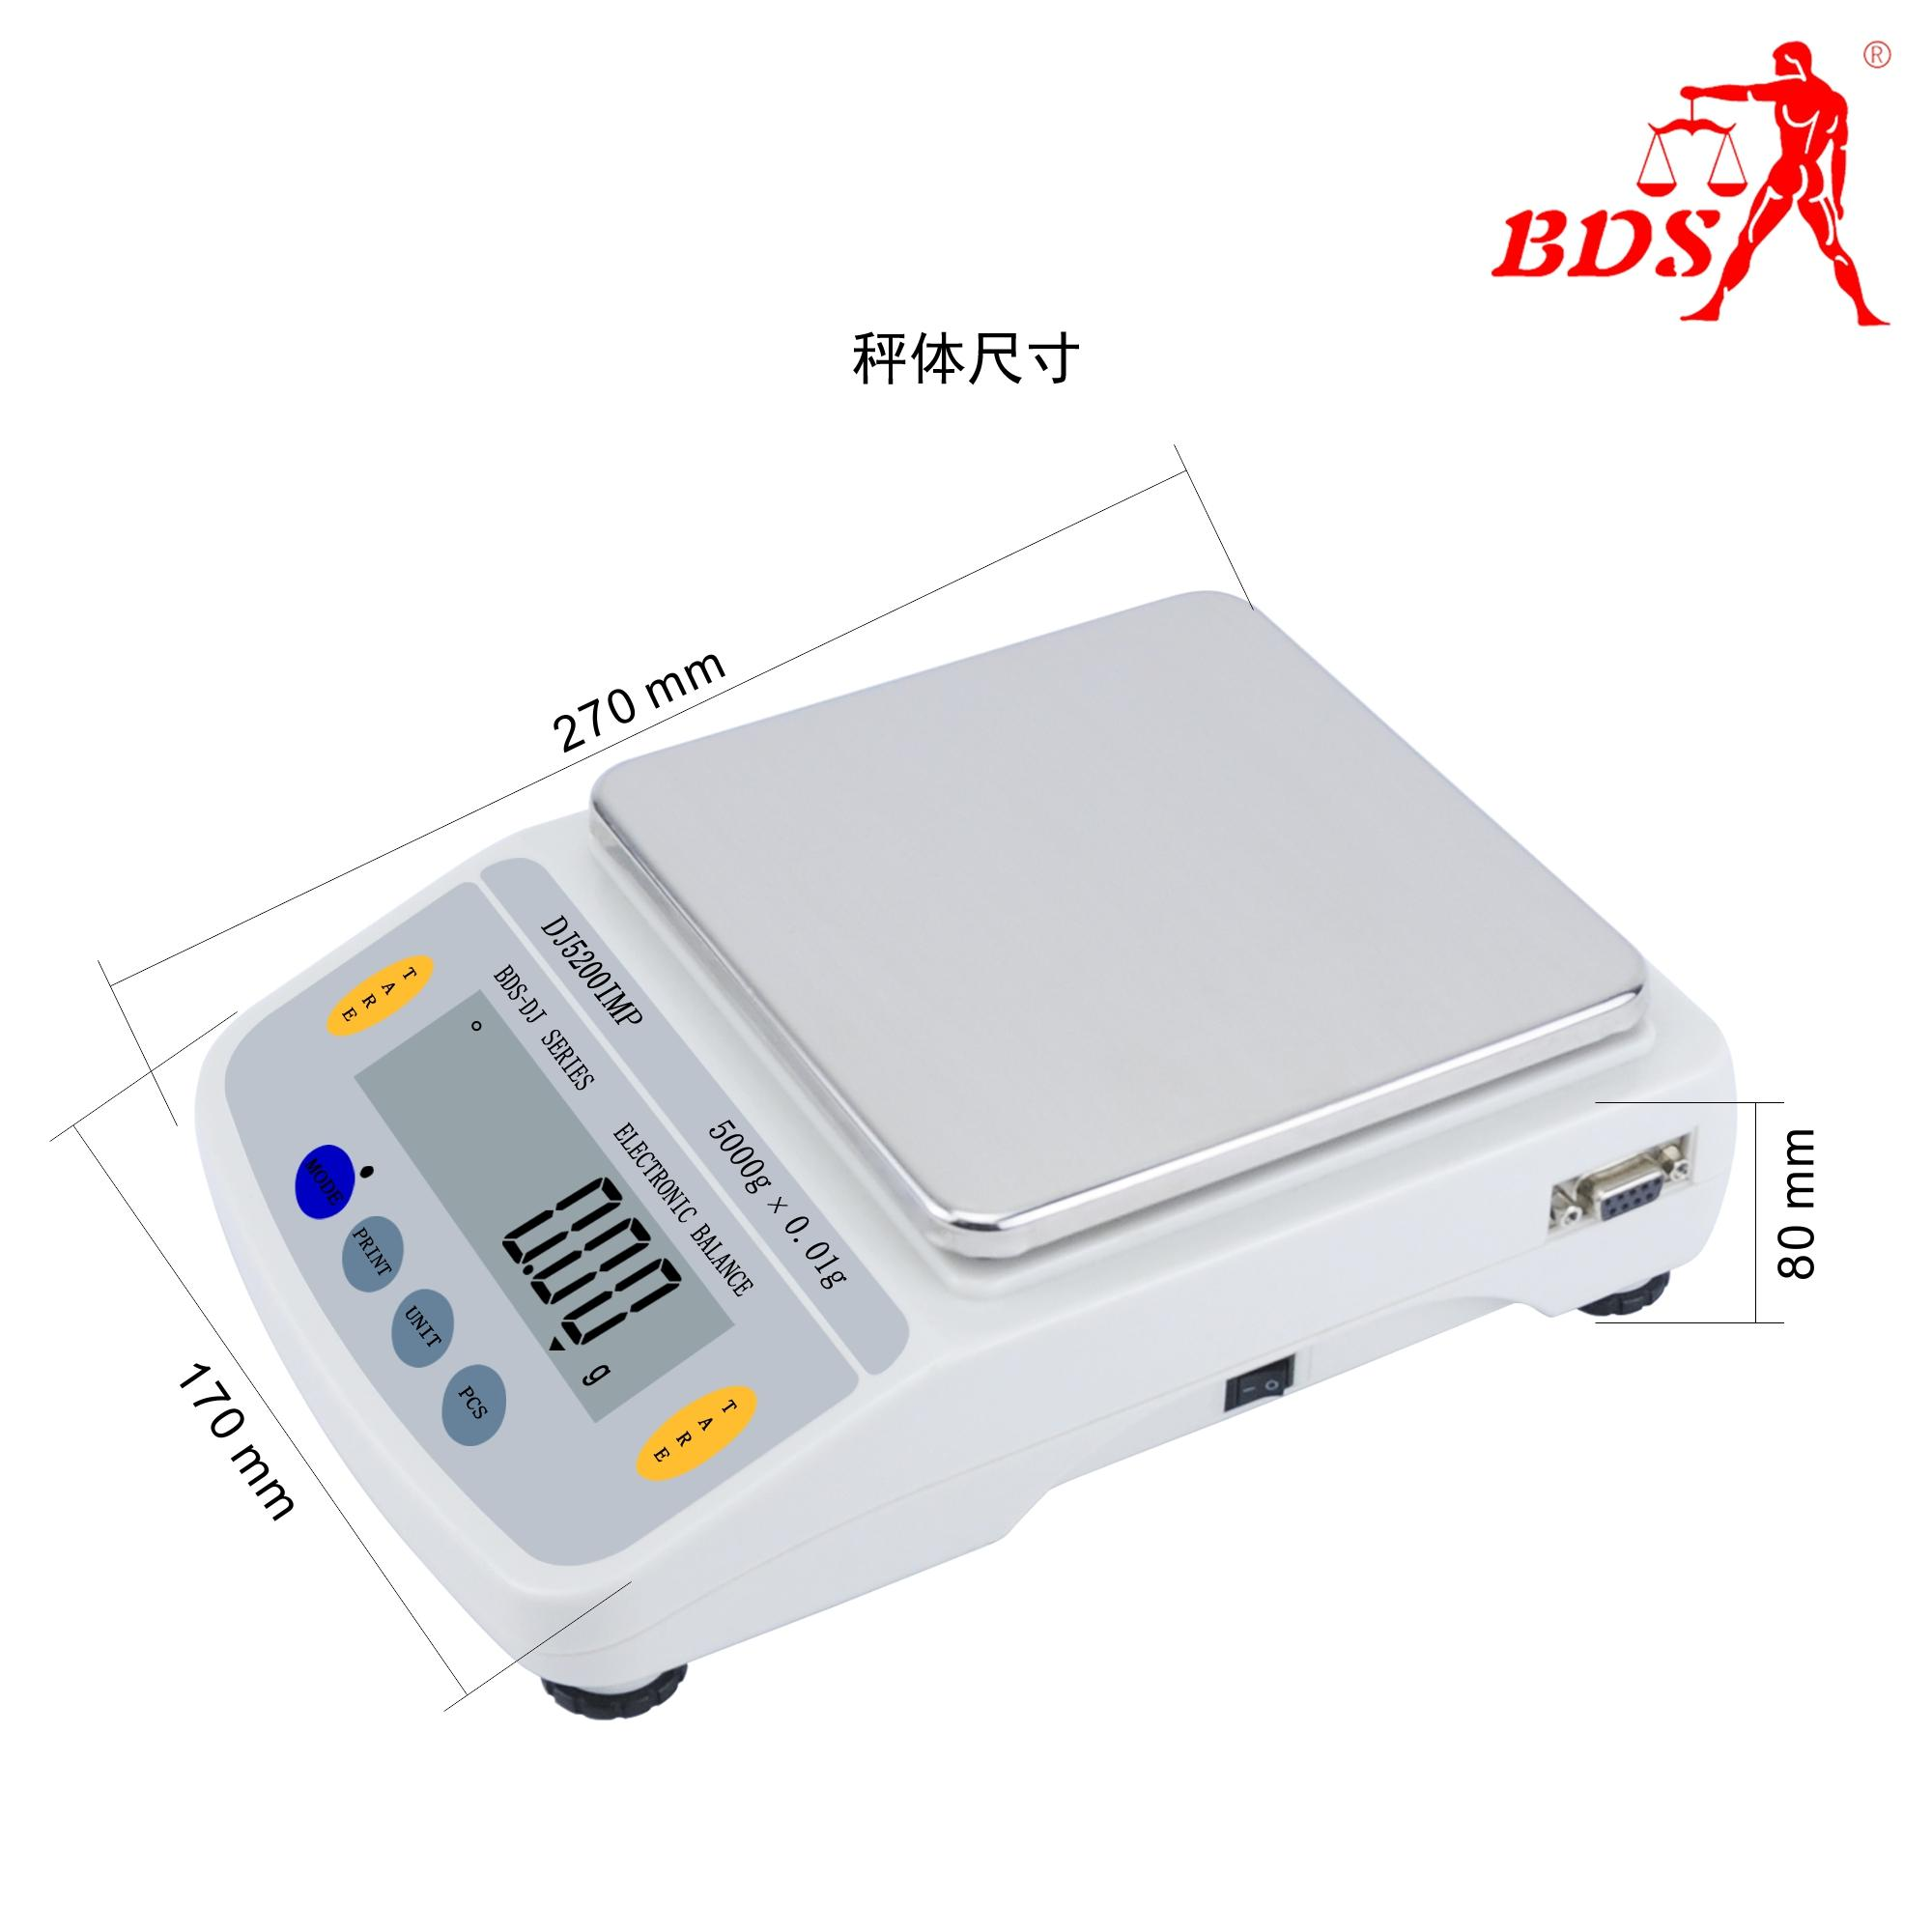 BDS electronic precision balance weighing scale electronic scale manufacturer  2